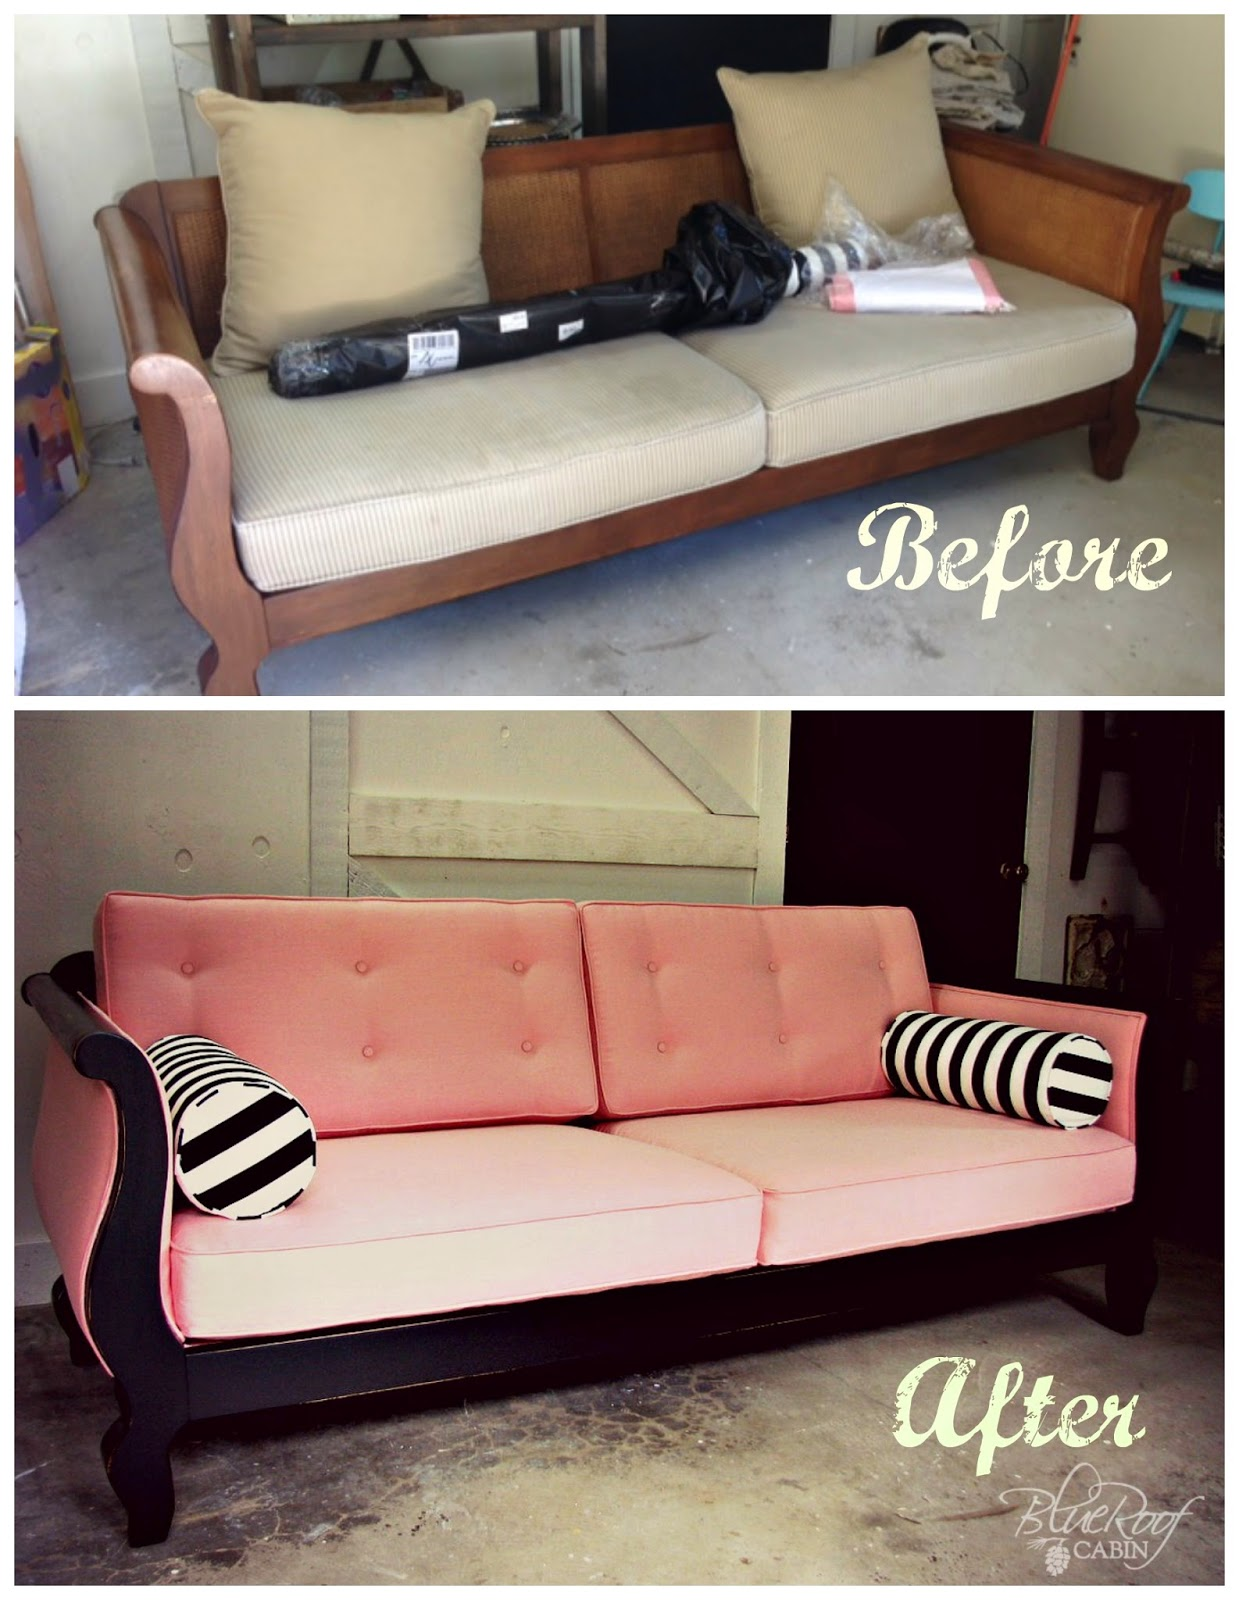 blue roof cabin Custom Upholstered Pink and Black Sofa